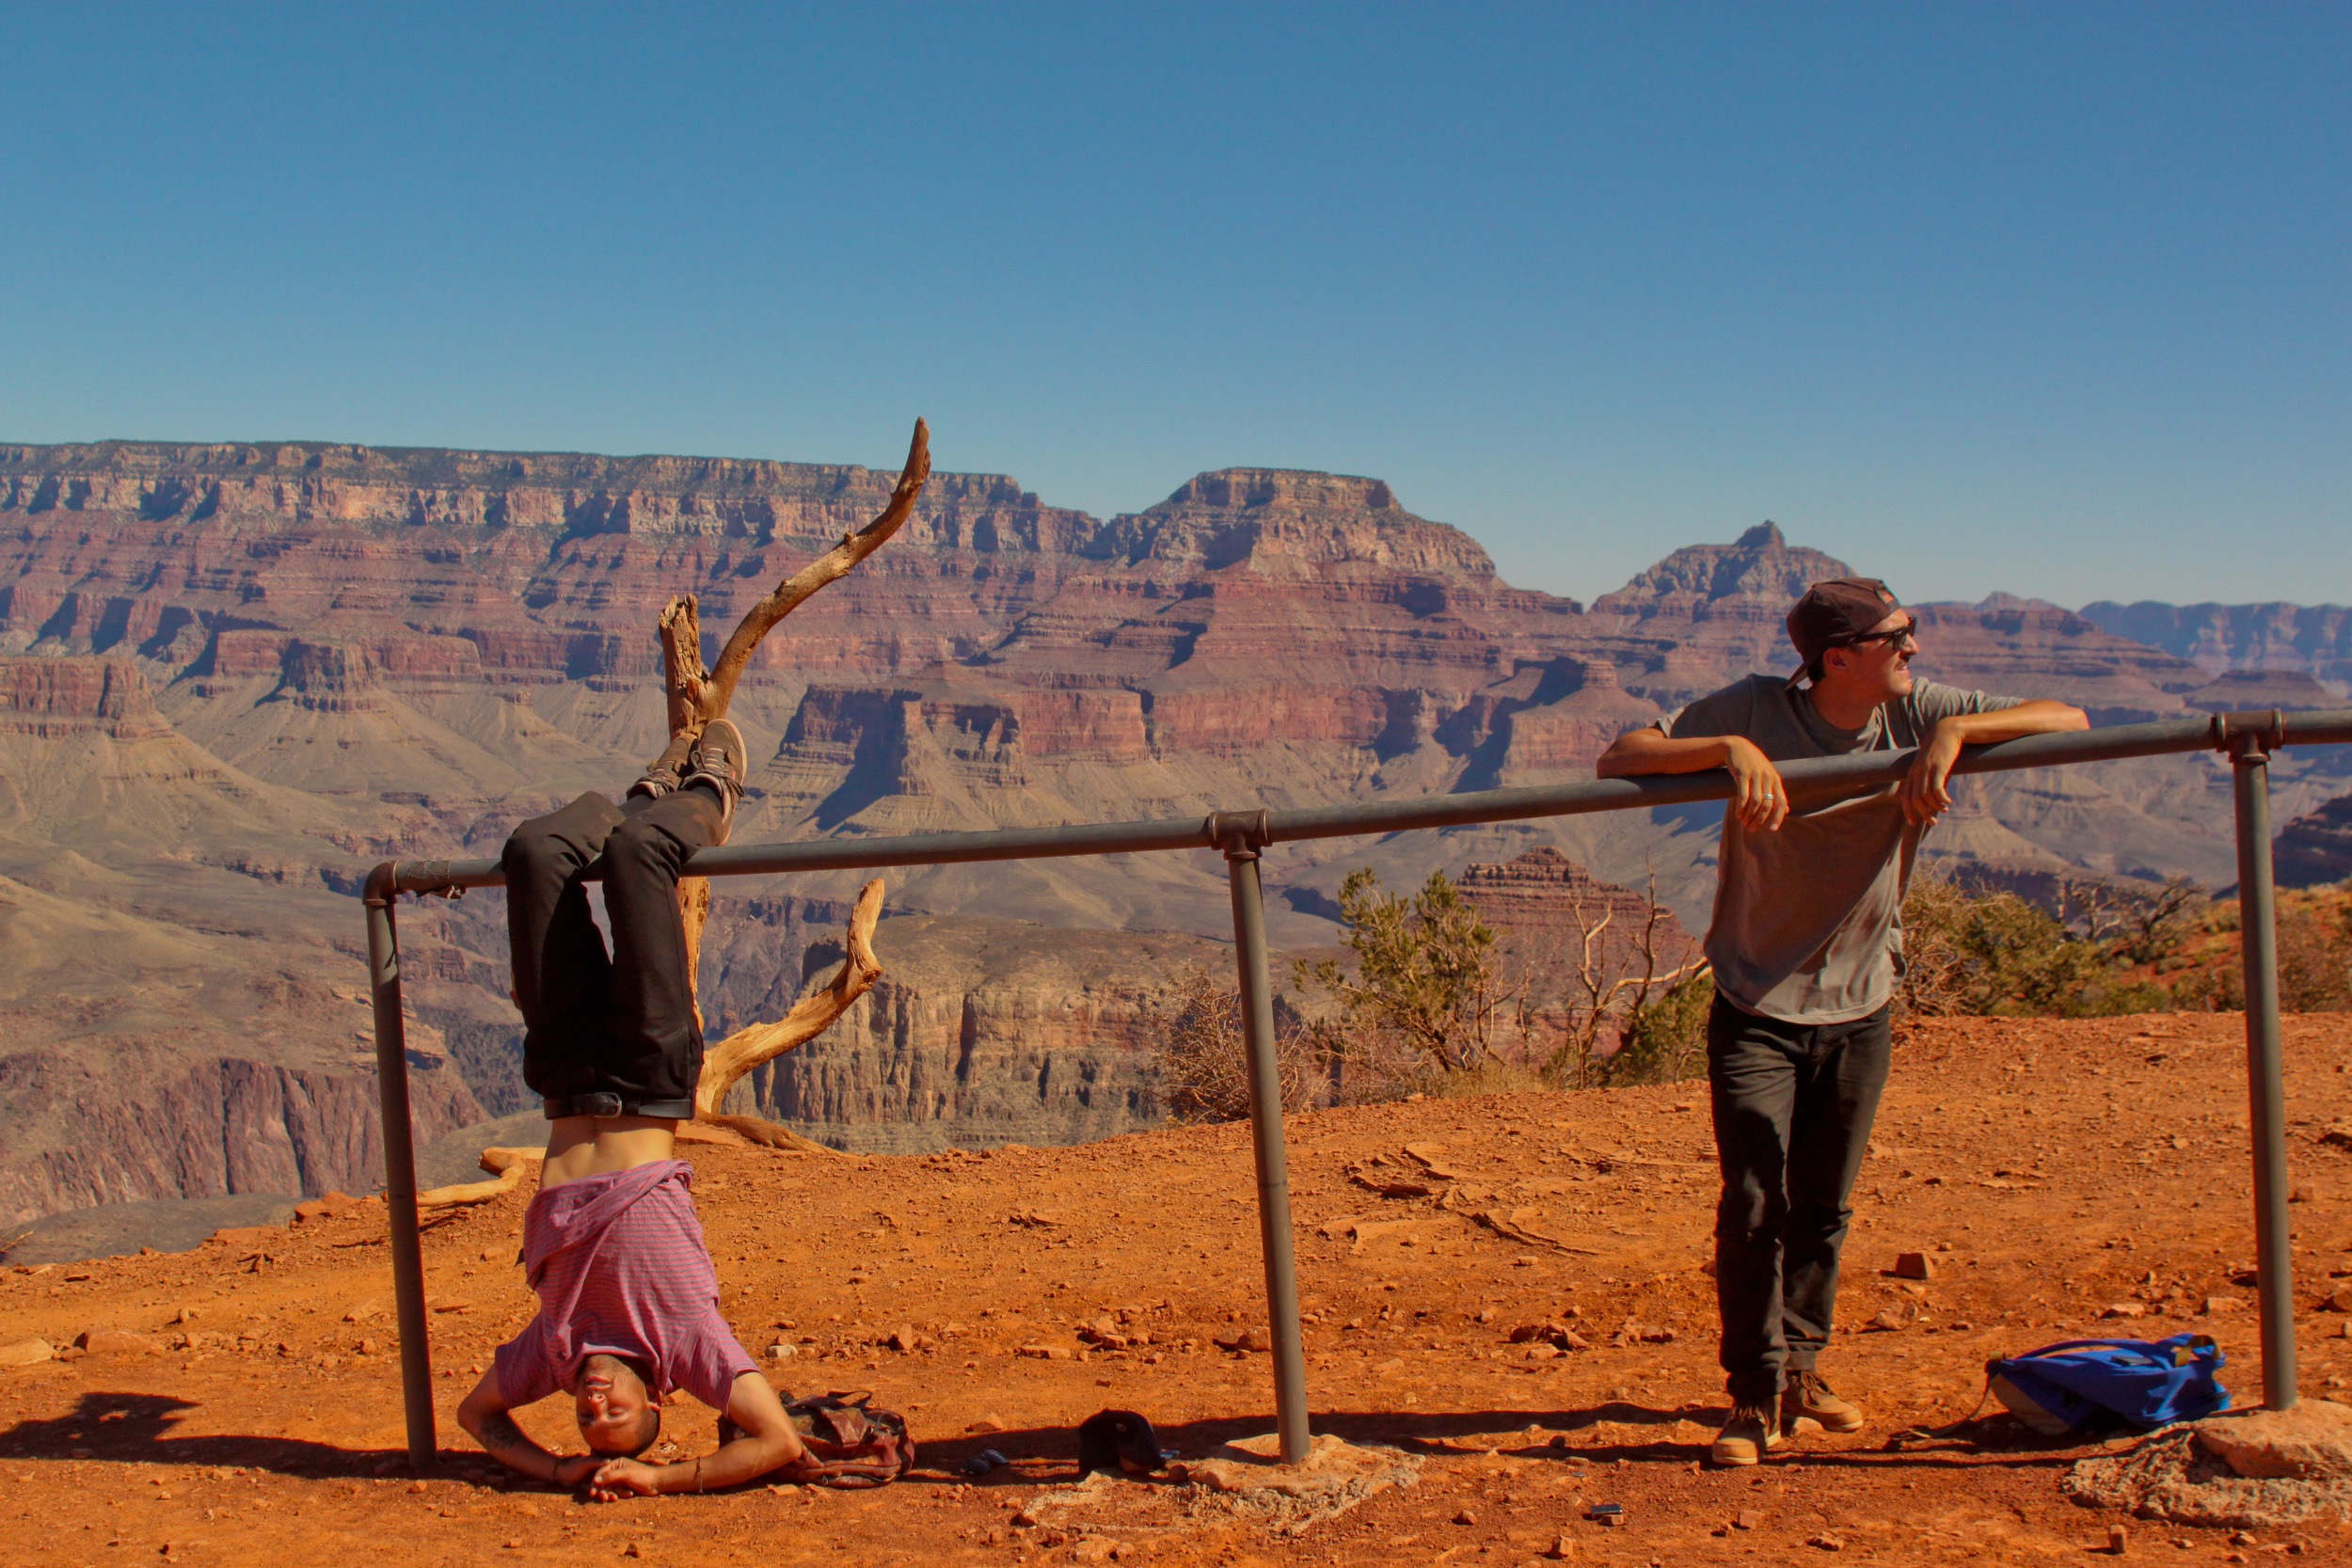 canyon-yoga_8147094740_o.jpg